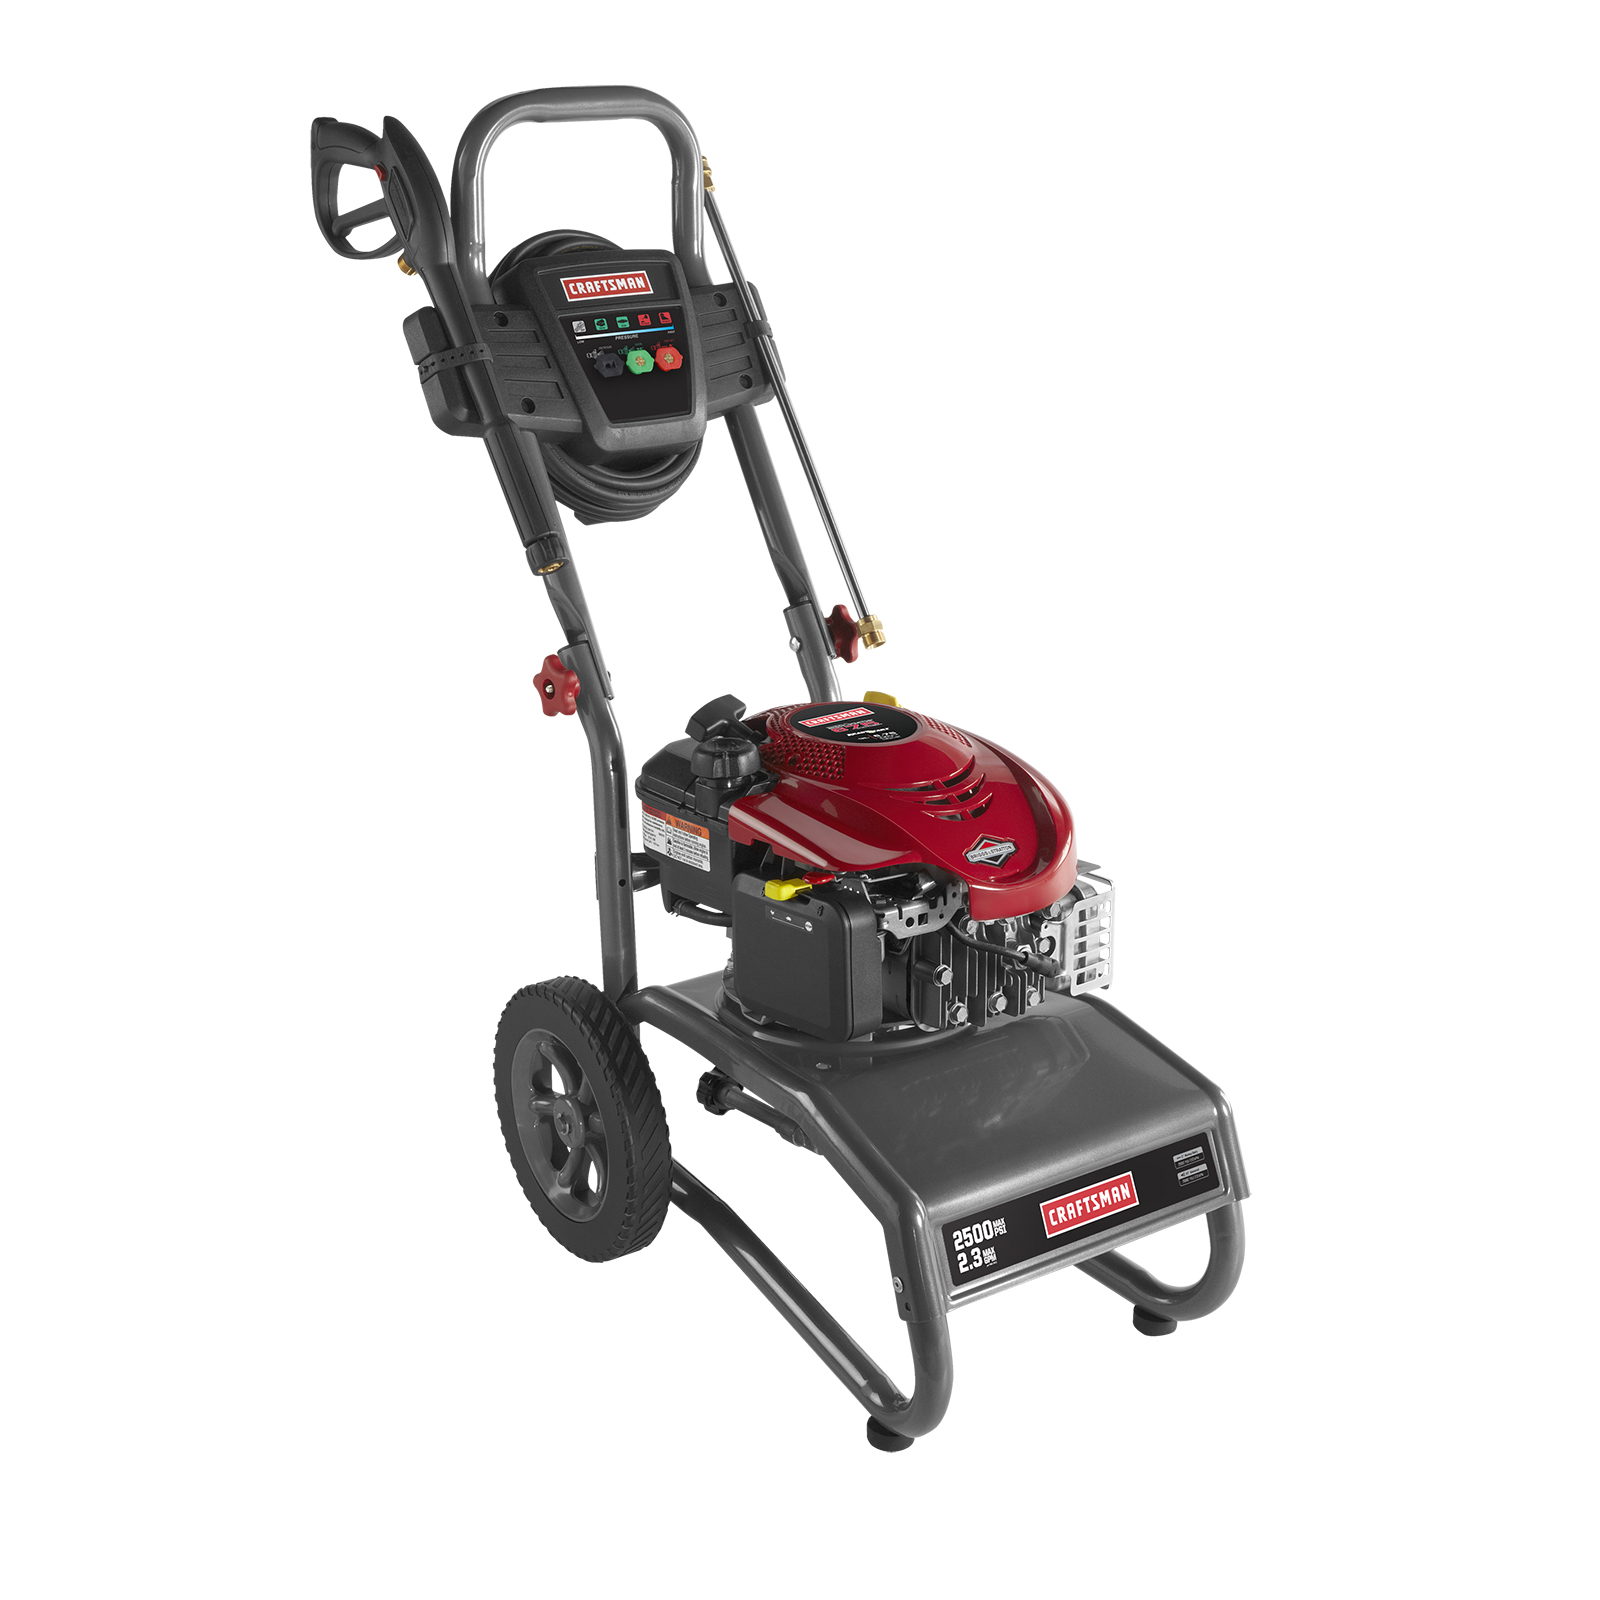 Crafsman 2500 PSI, 2.3 GPM Gas Pressure Washer